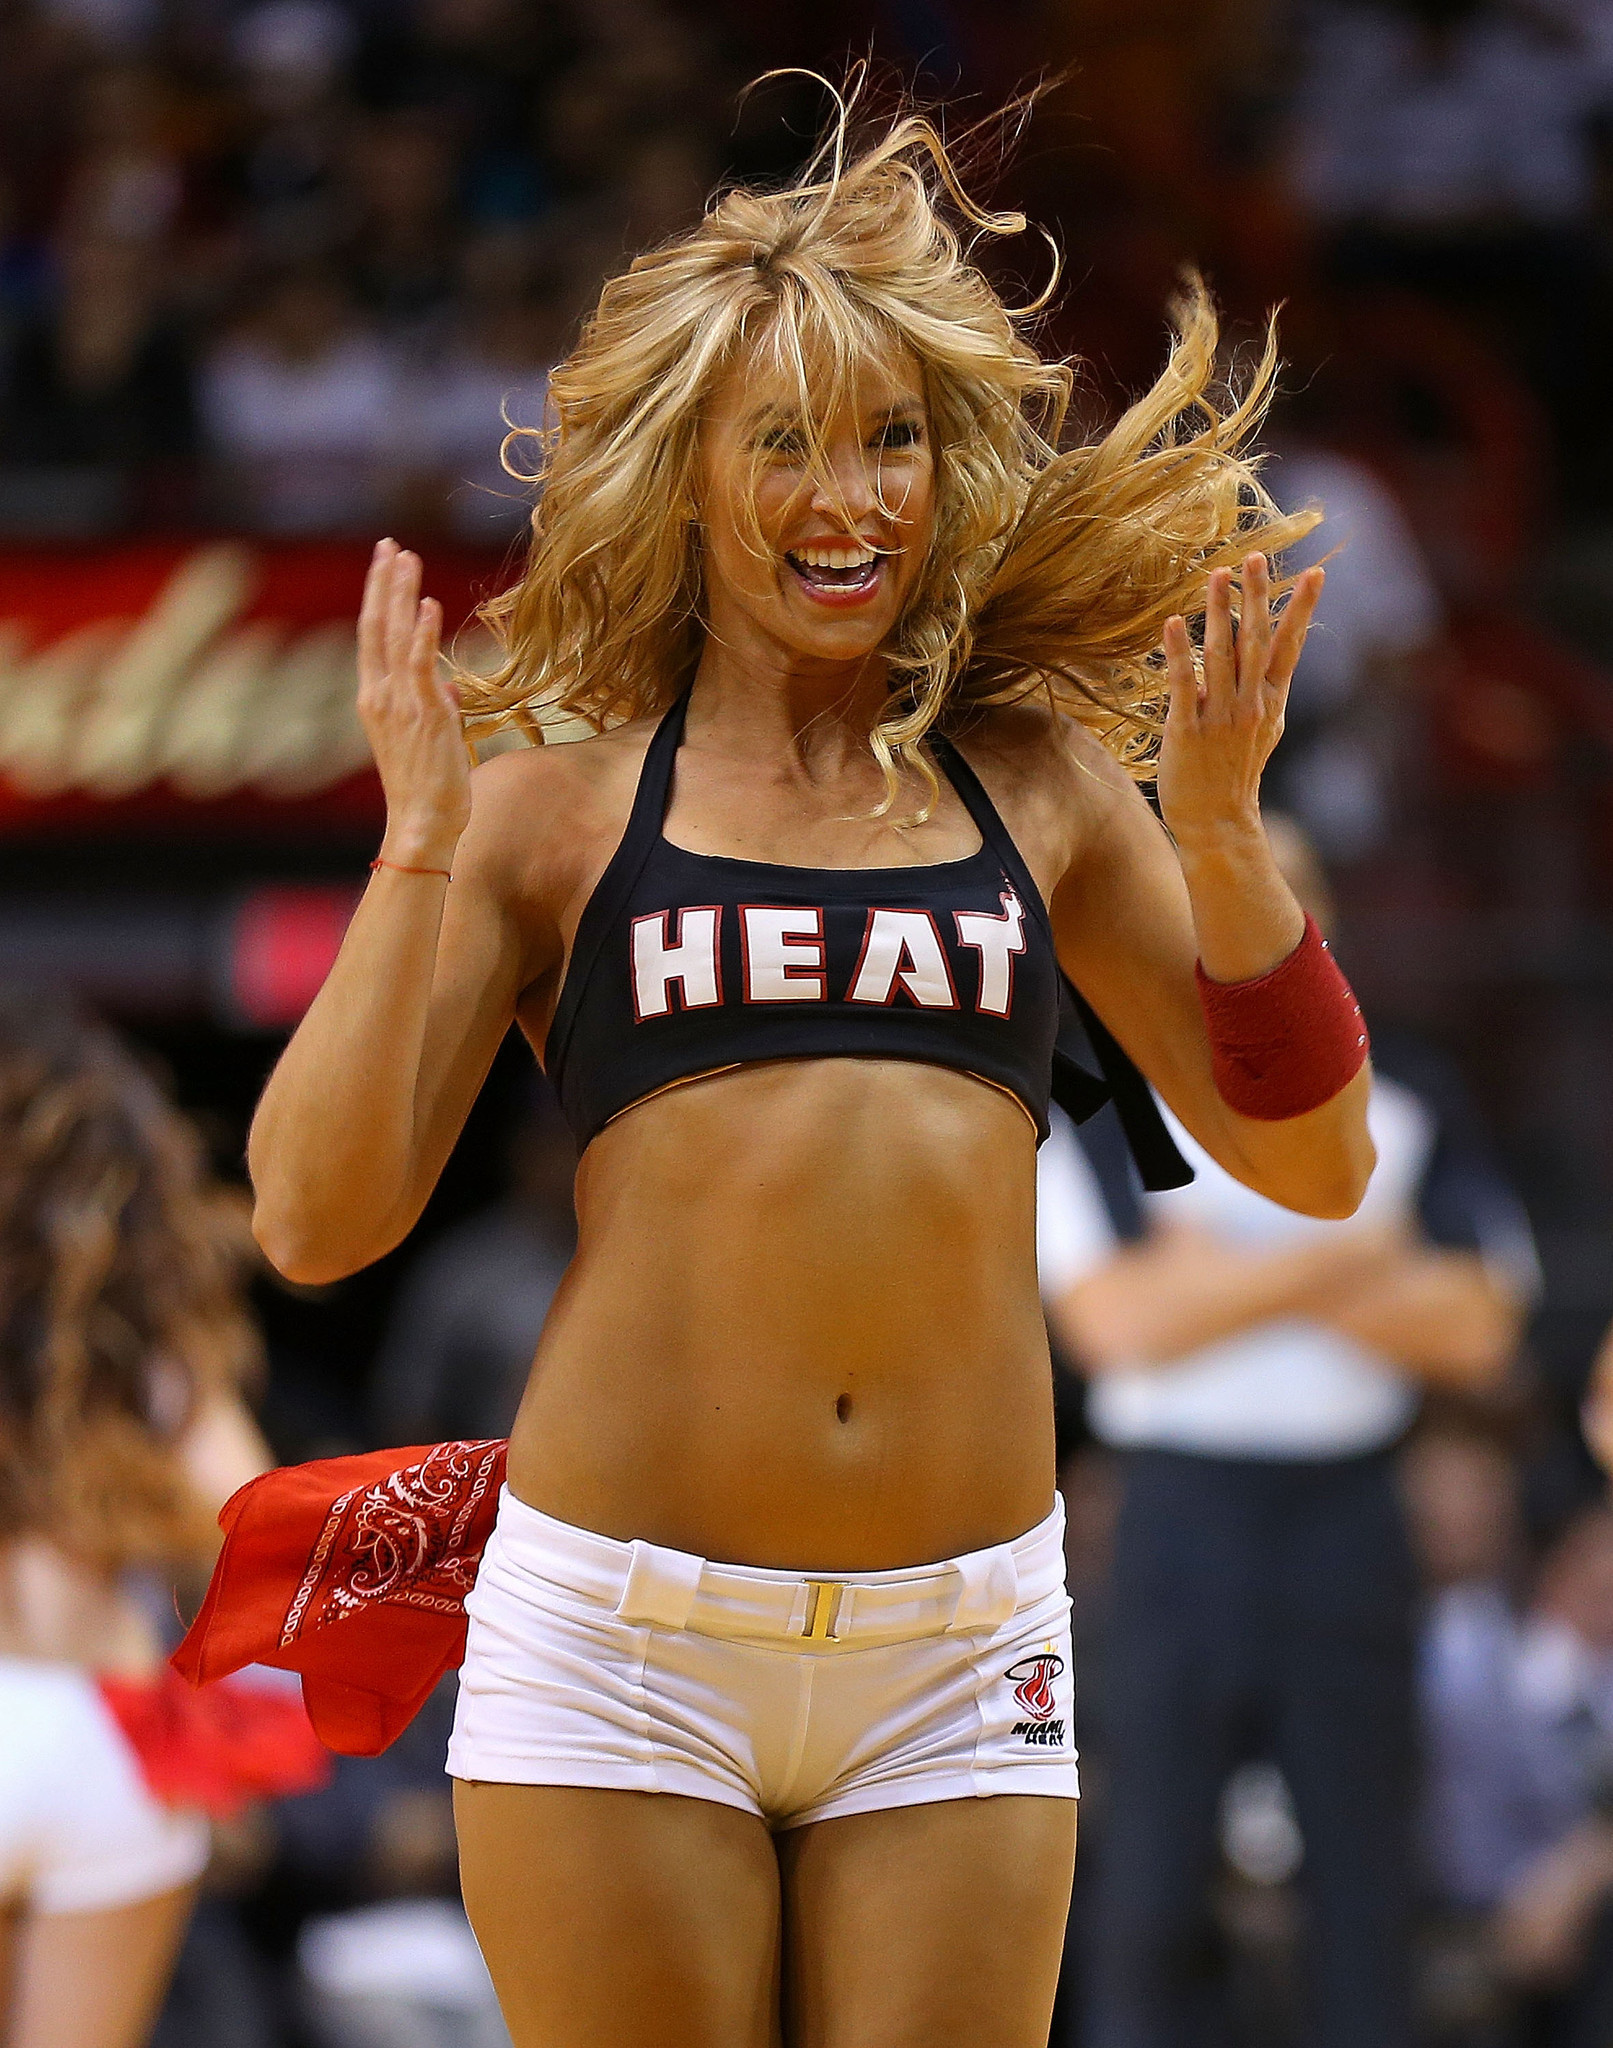 <b>Photos:</b> Miami Heat Dancers in action - A member of the Miami Heat dance team performs during a game against the Minnesota Timberwolves.